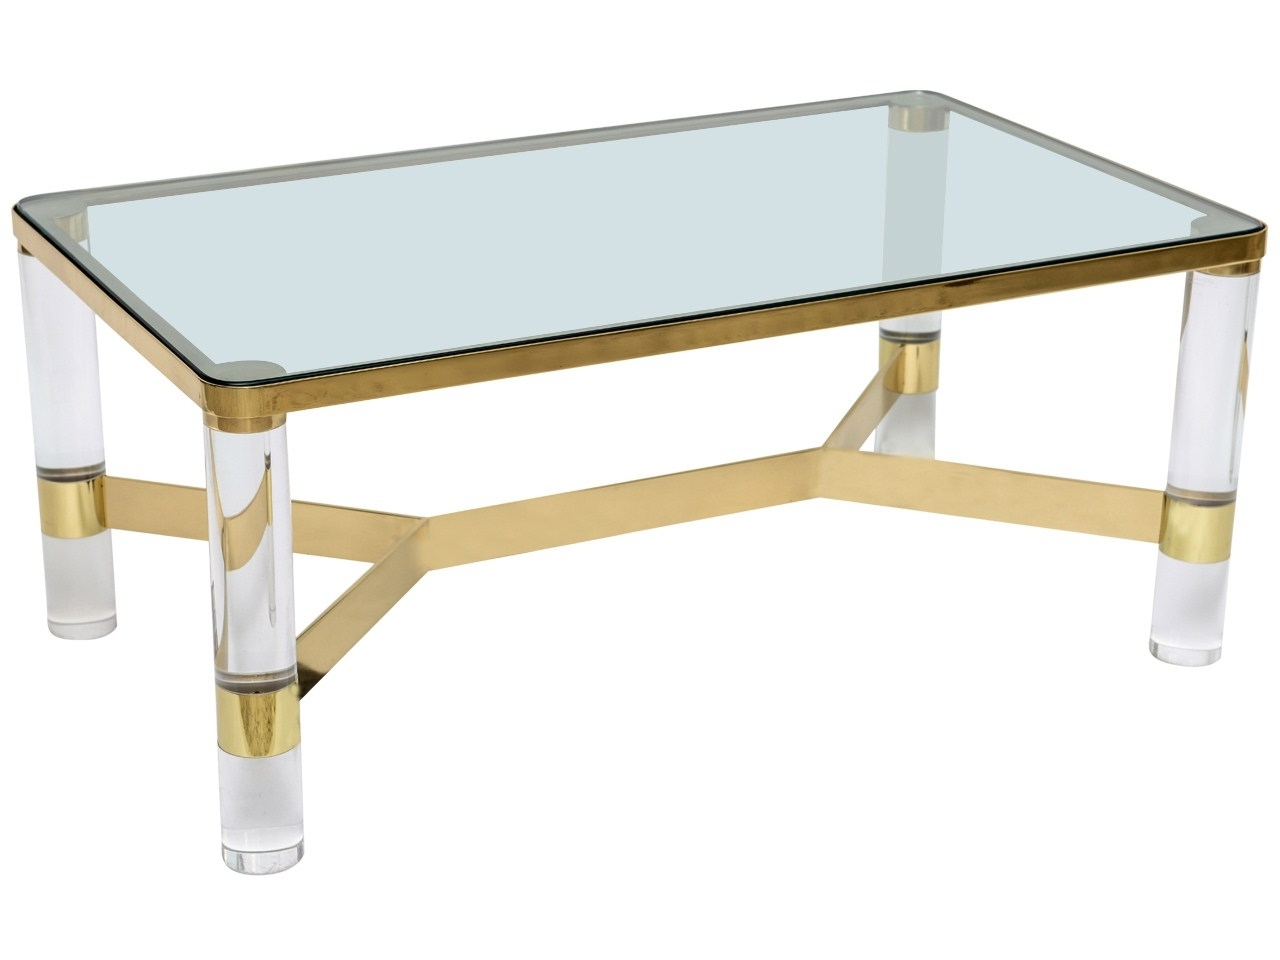 Awesome Plexiglass Coffee Table With A Clear Choicemodern Brass within Peekaboo Acrylic Coffee Tables (Image 10 of 30)